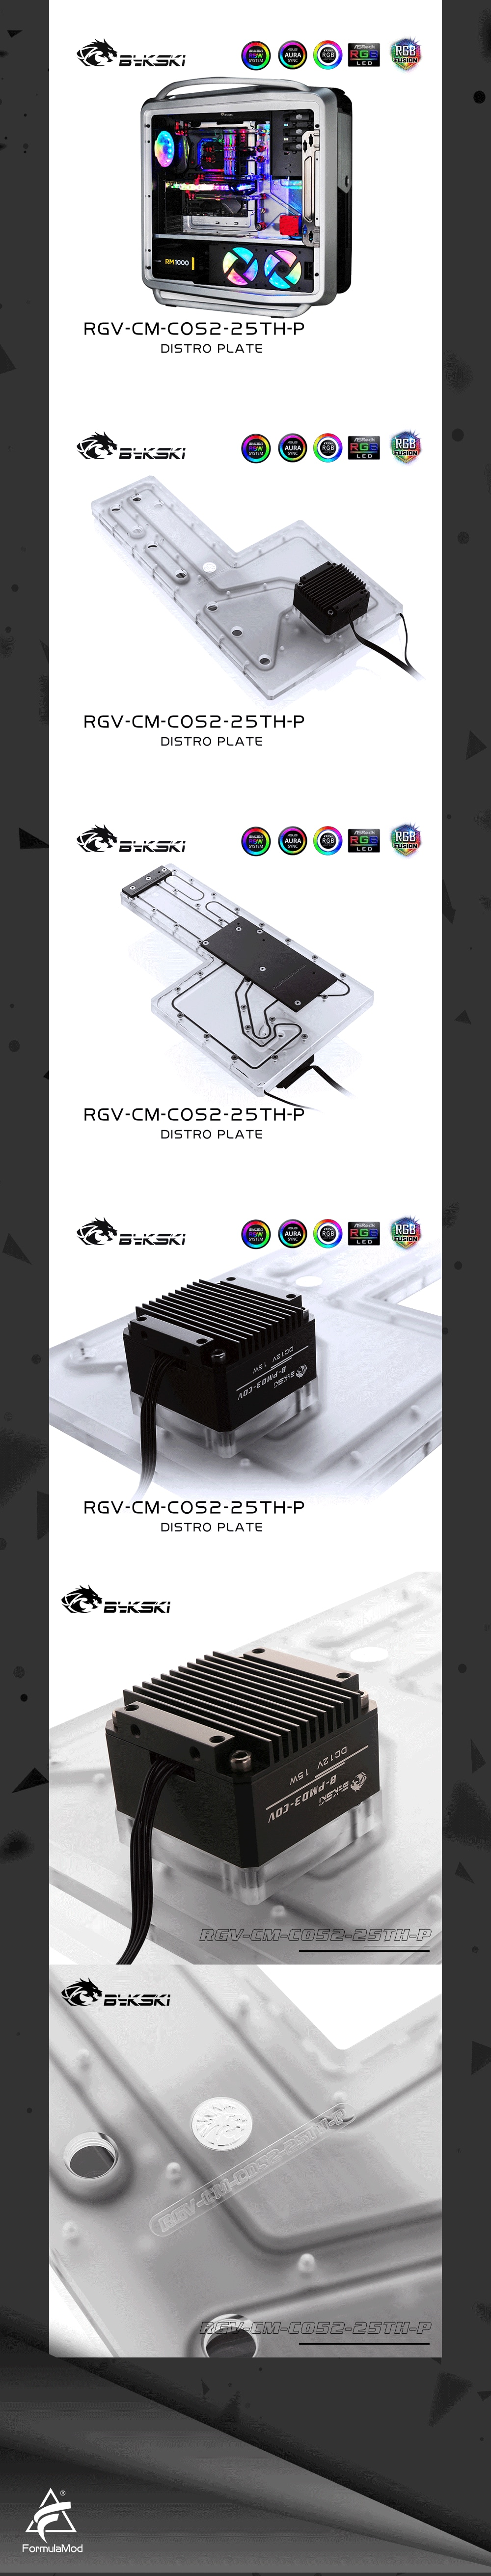 Bykski Waterway Cooling Kit For ASUS ROG Strix Helios Case, 5V ARGB, For Single GPU Building, RGV-AS-STRIXHS-P